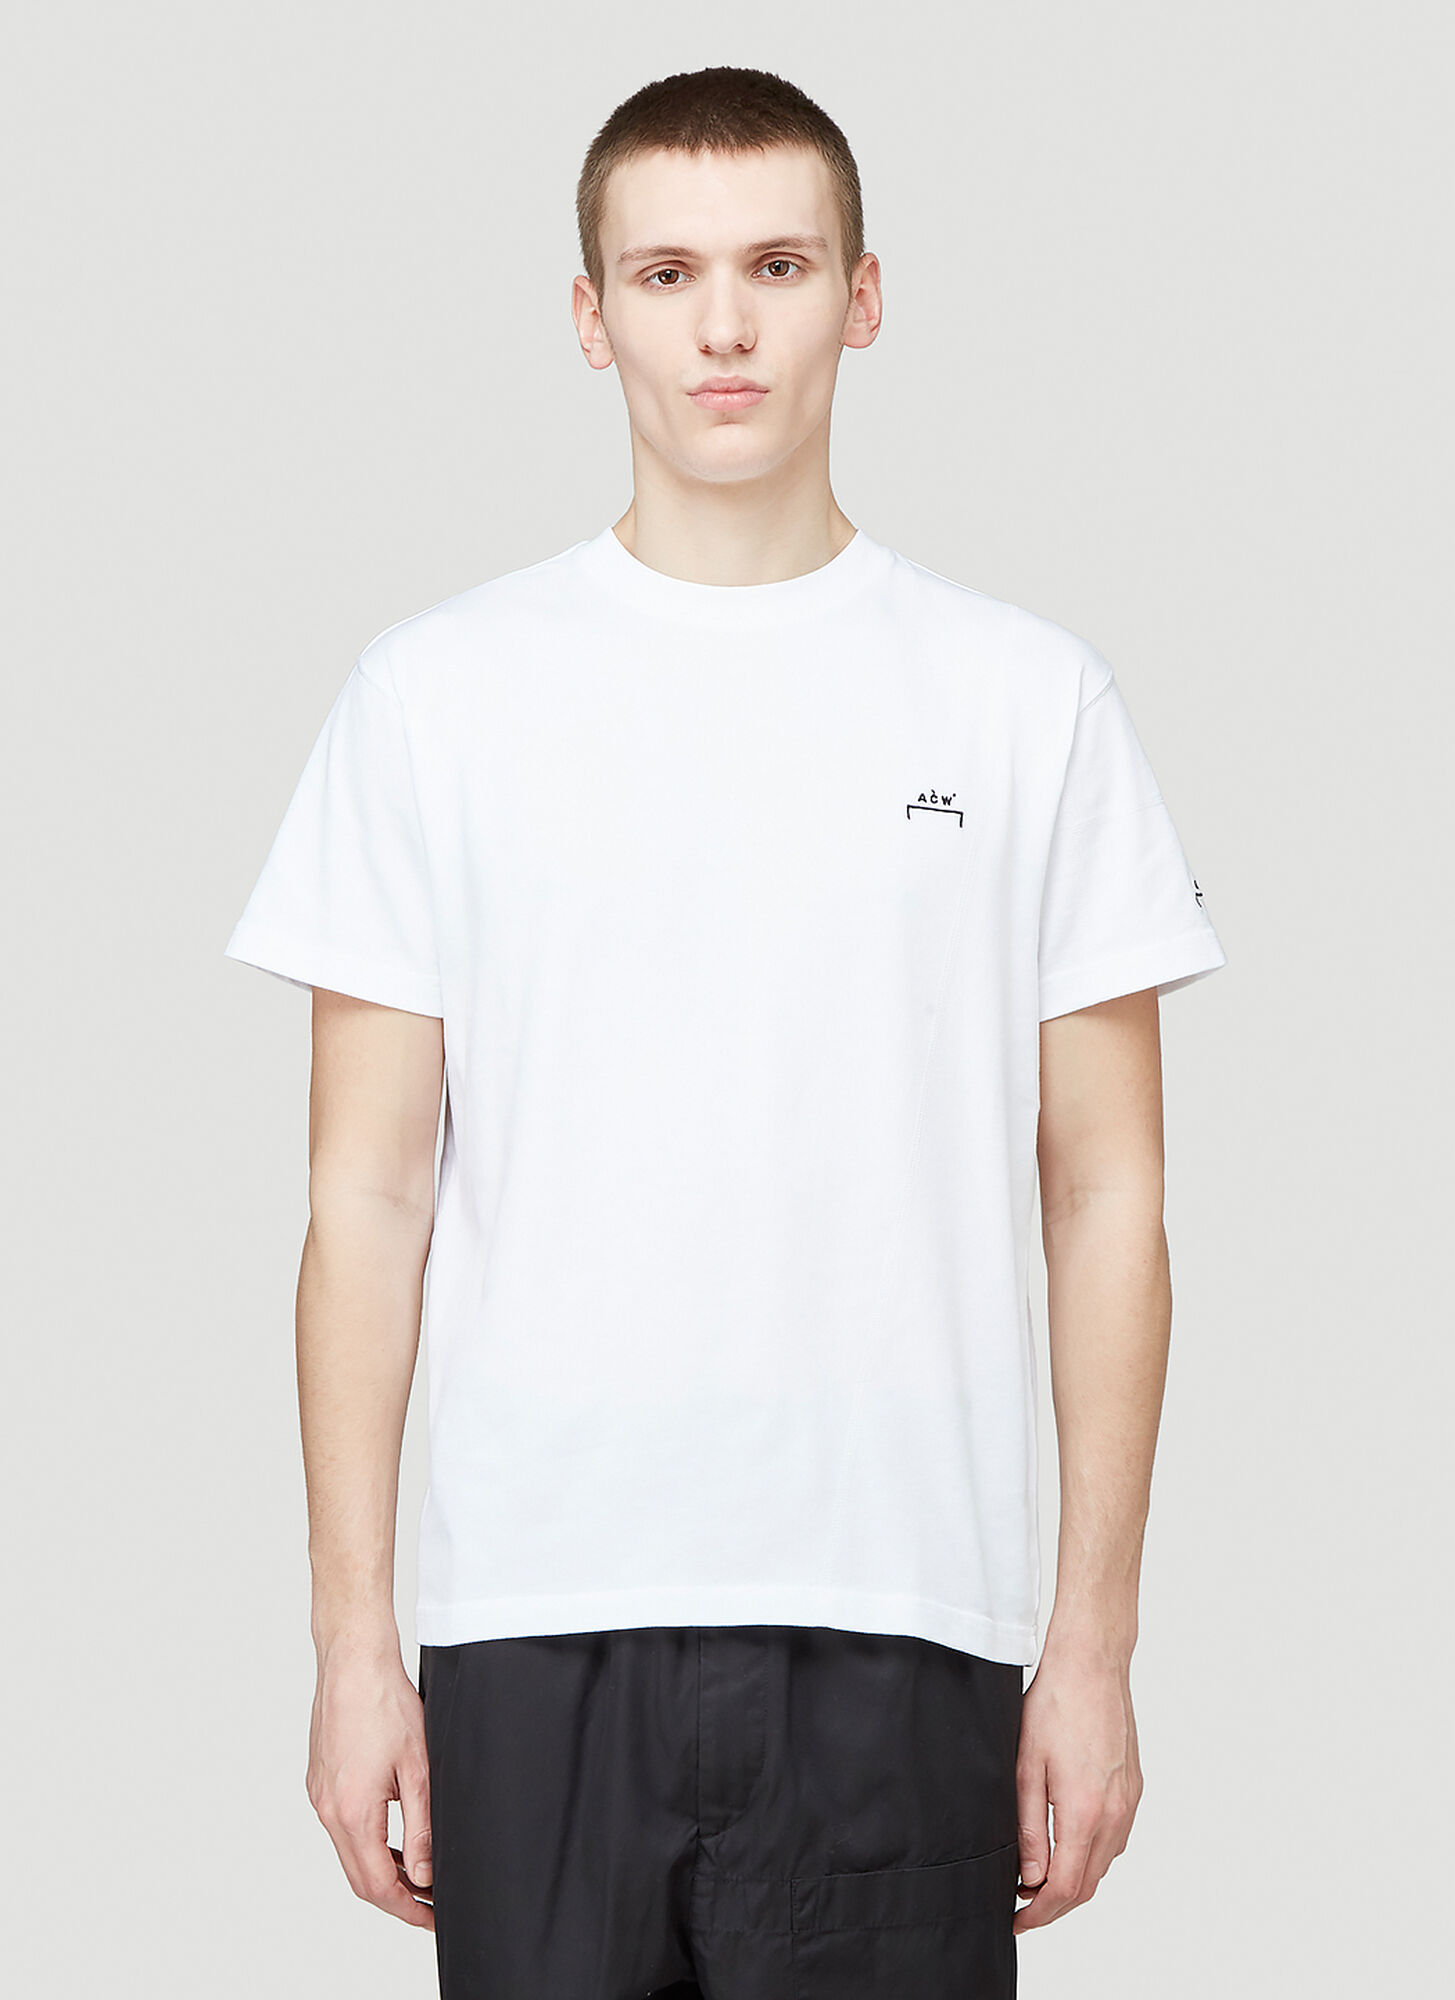 A-COLD-WALL* Essential T-Shirt